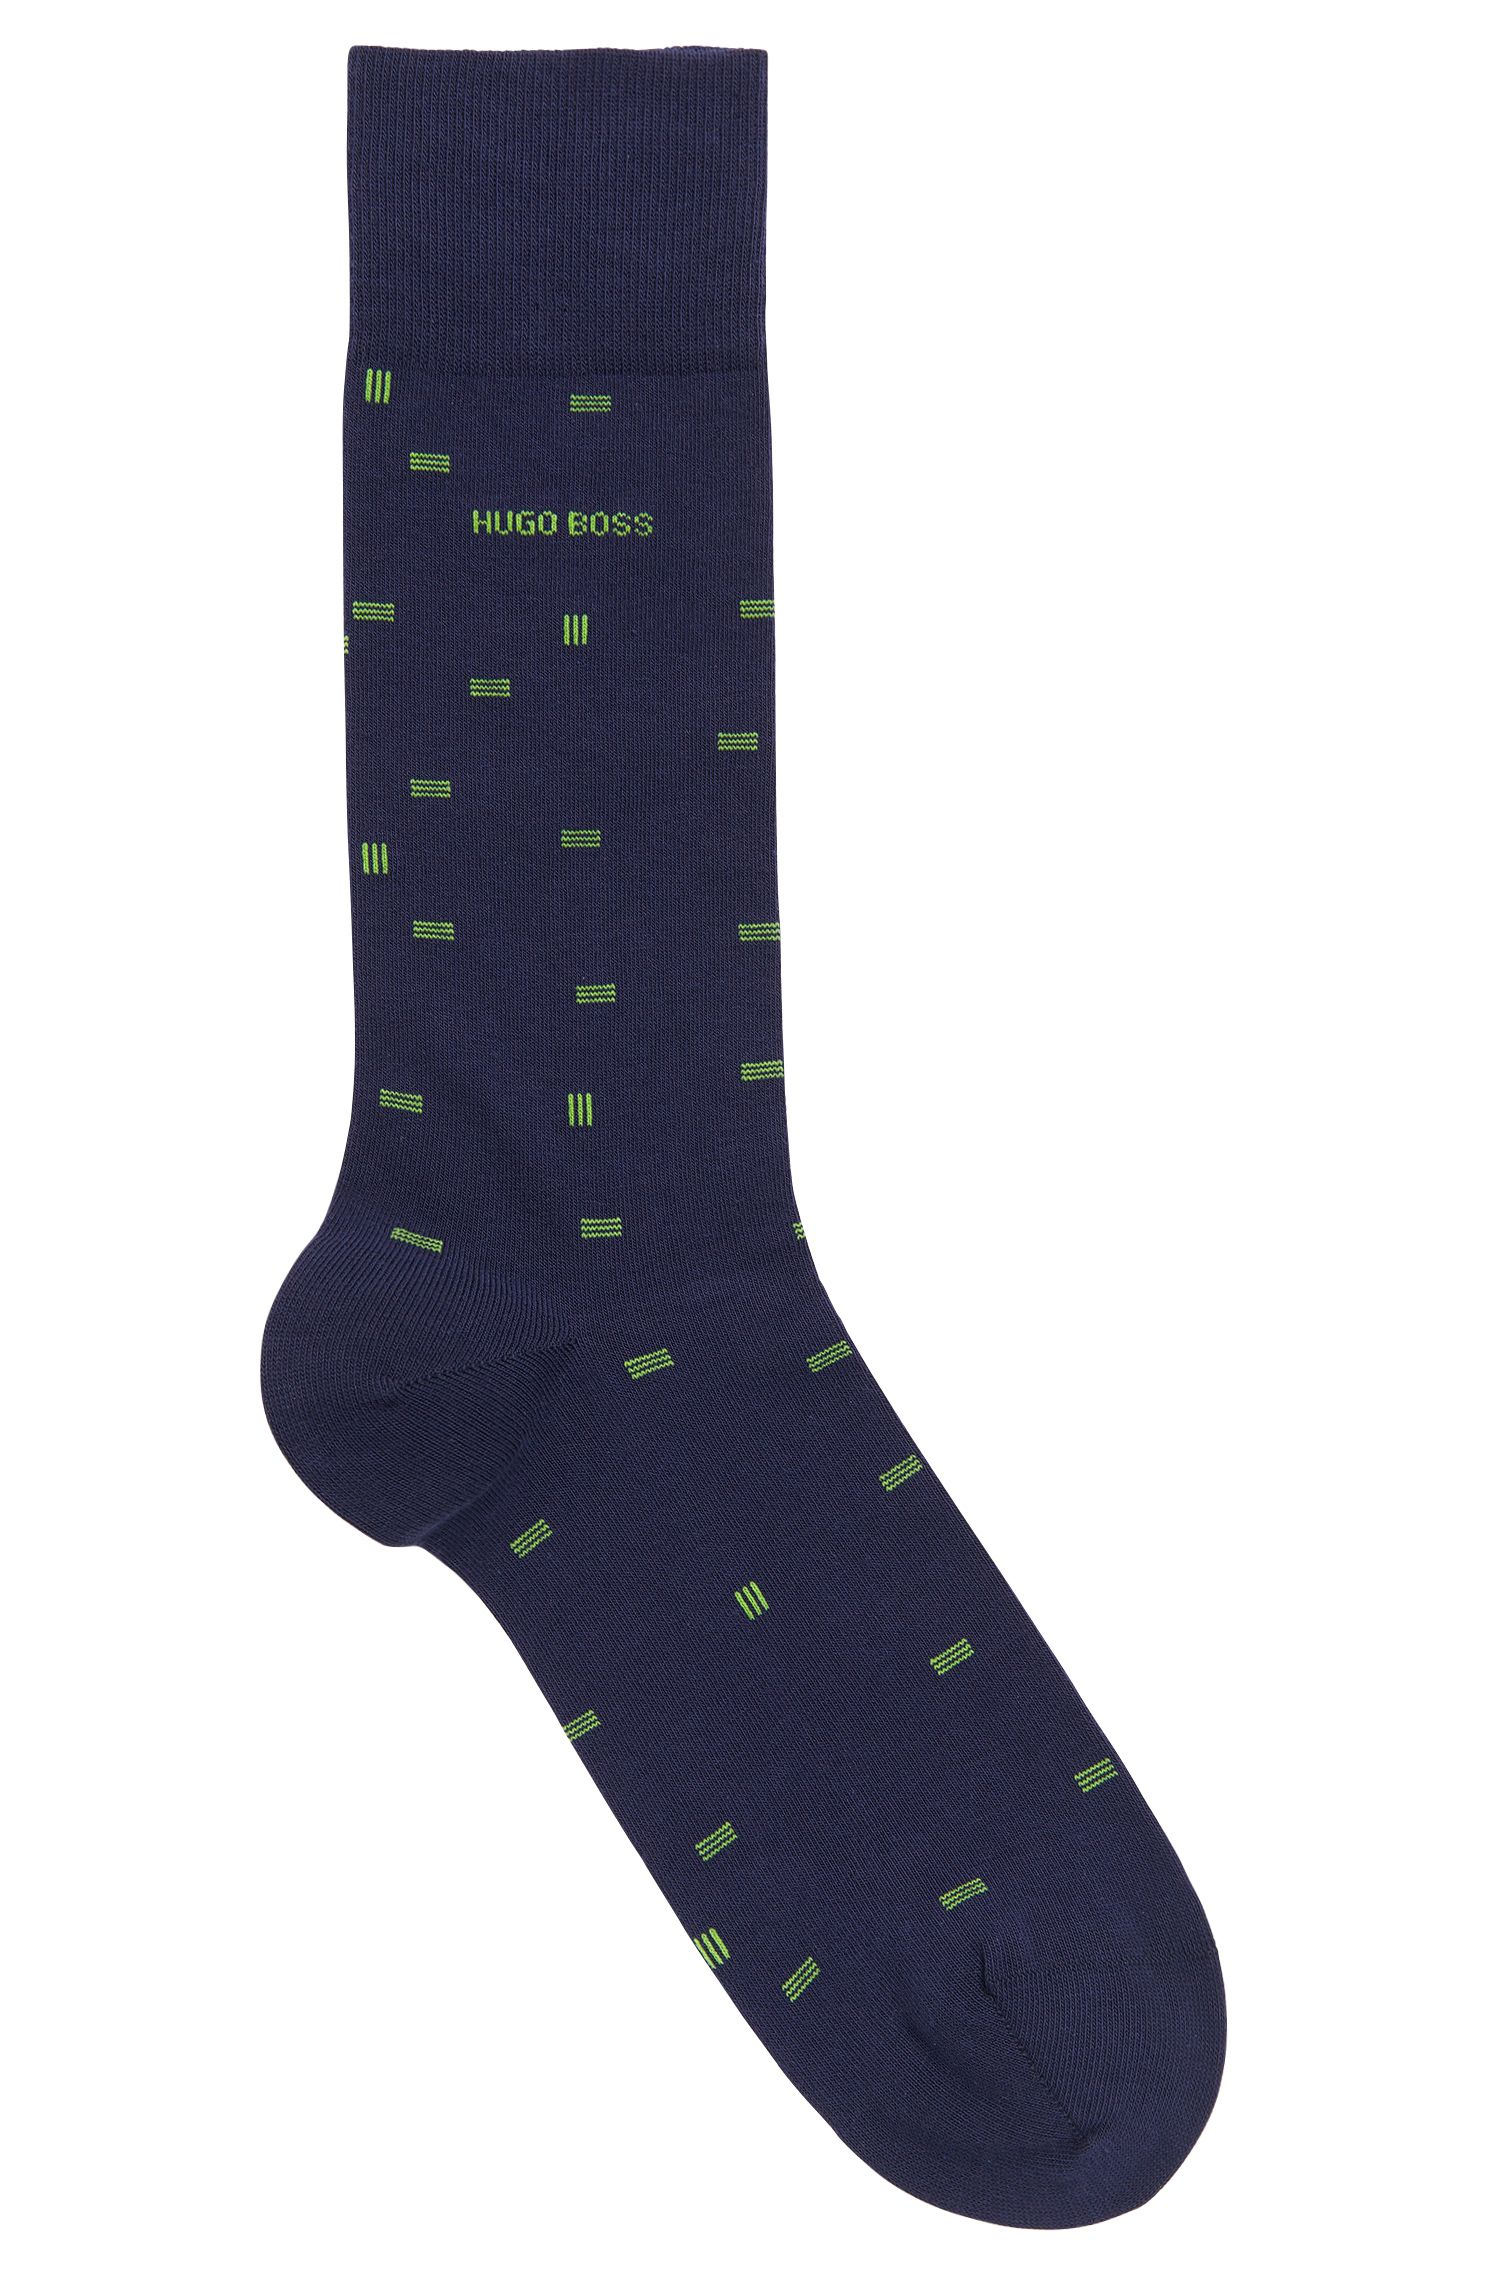 Precisely patterned socks in combed cotton blend